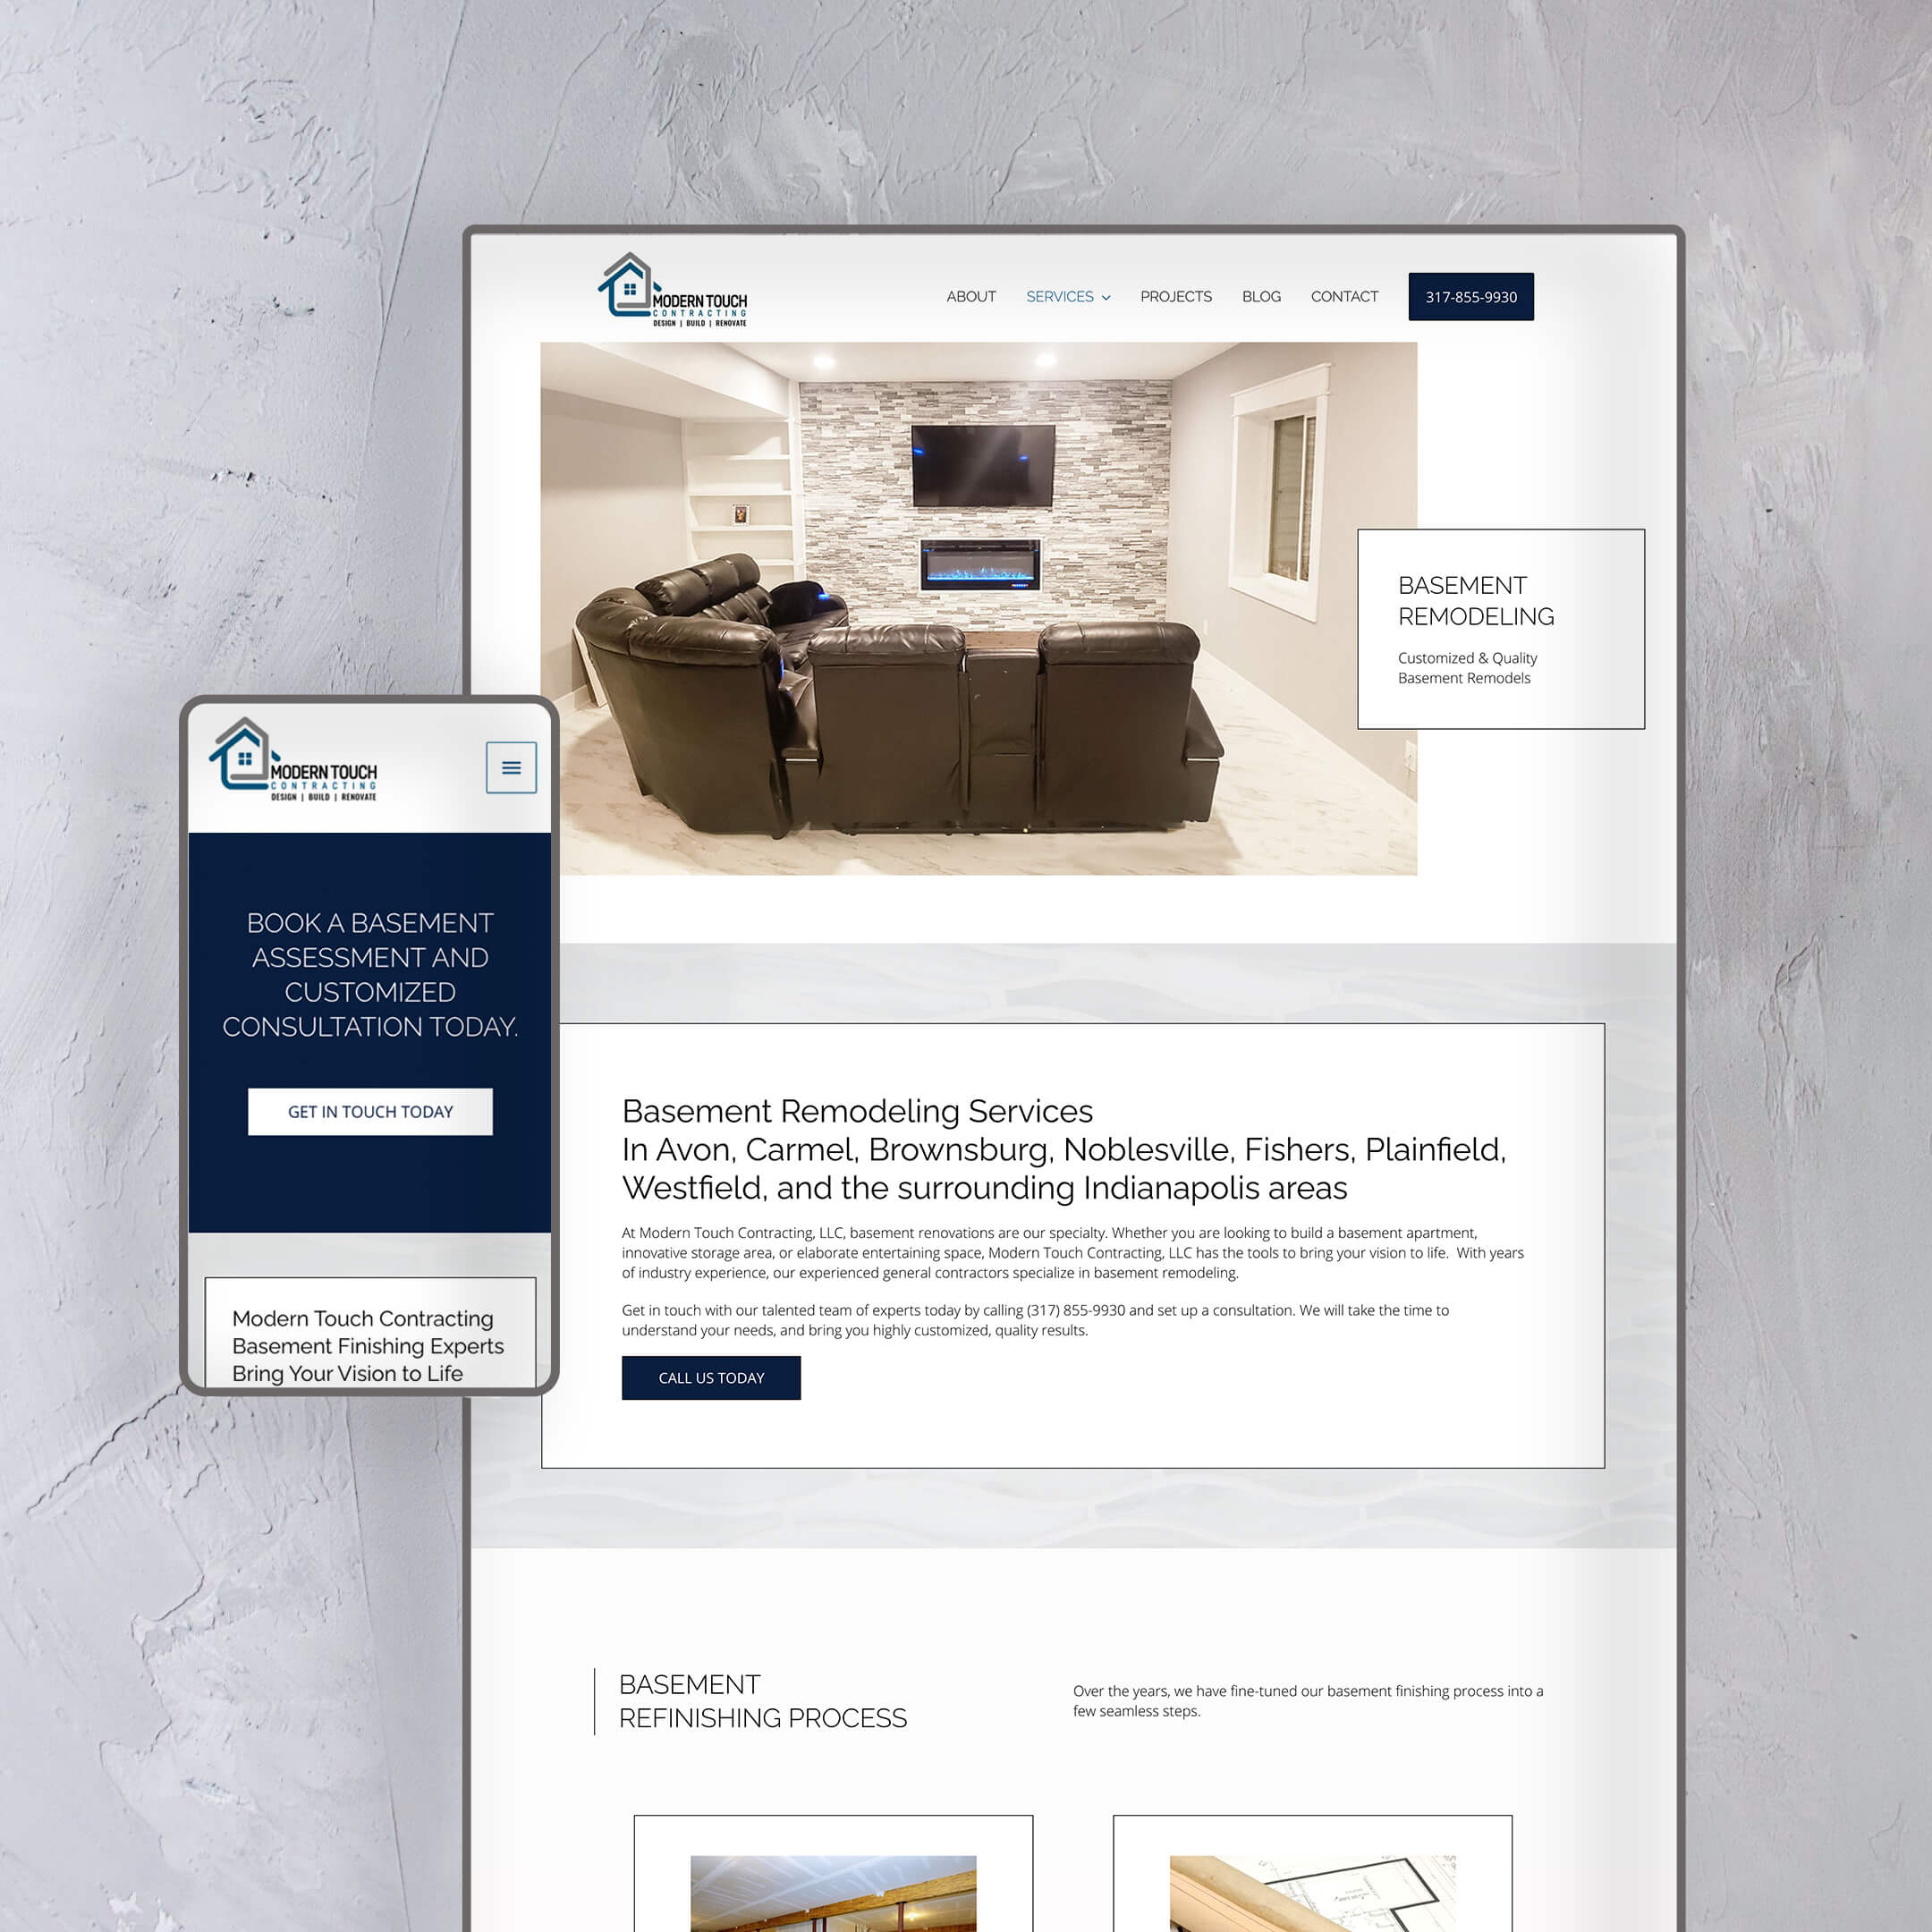 Modern Touch Contracting of Indianapolis - Construction Basement website page